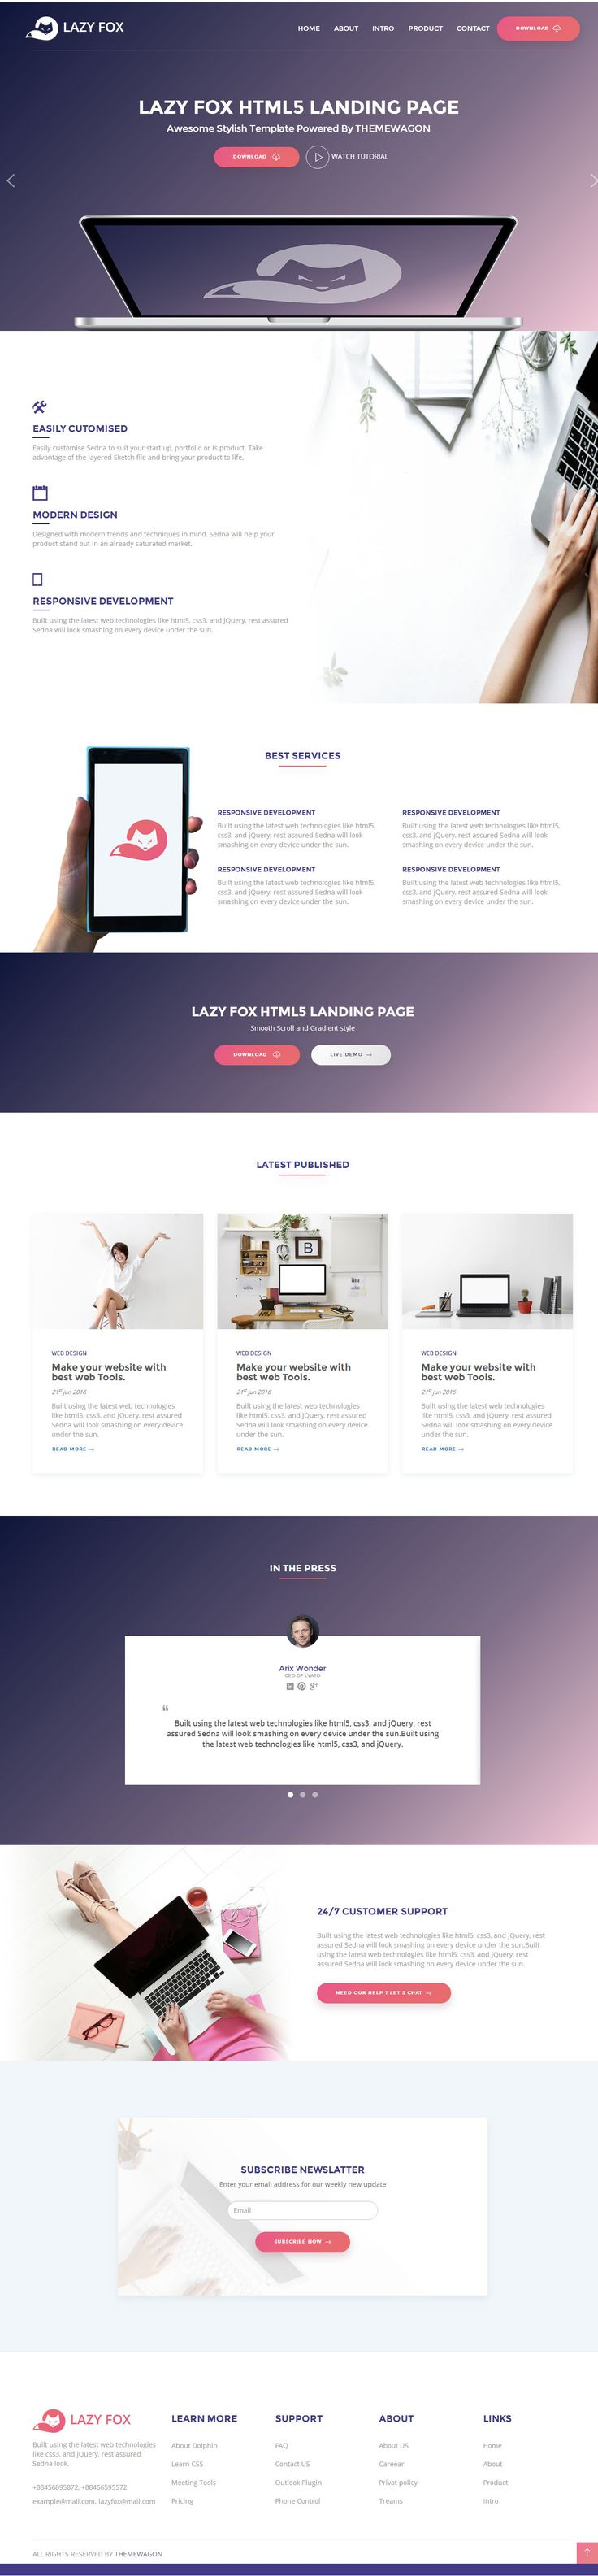 203 best Free HTML Templates images on Pinterest | Powerful quotes ...